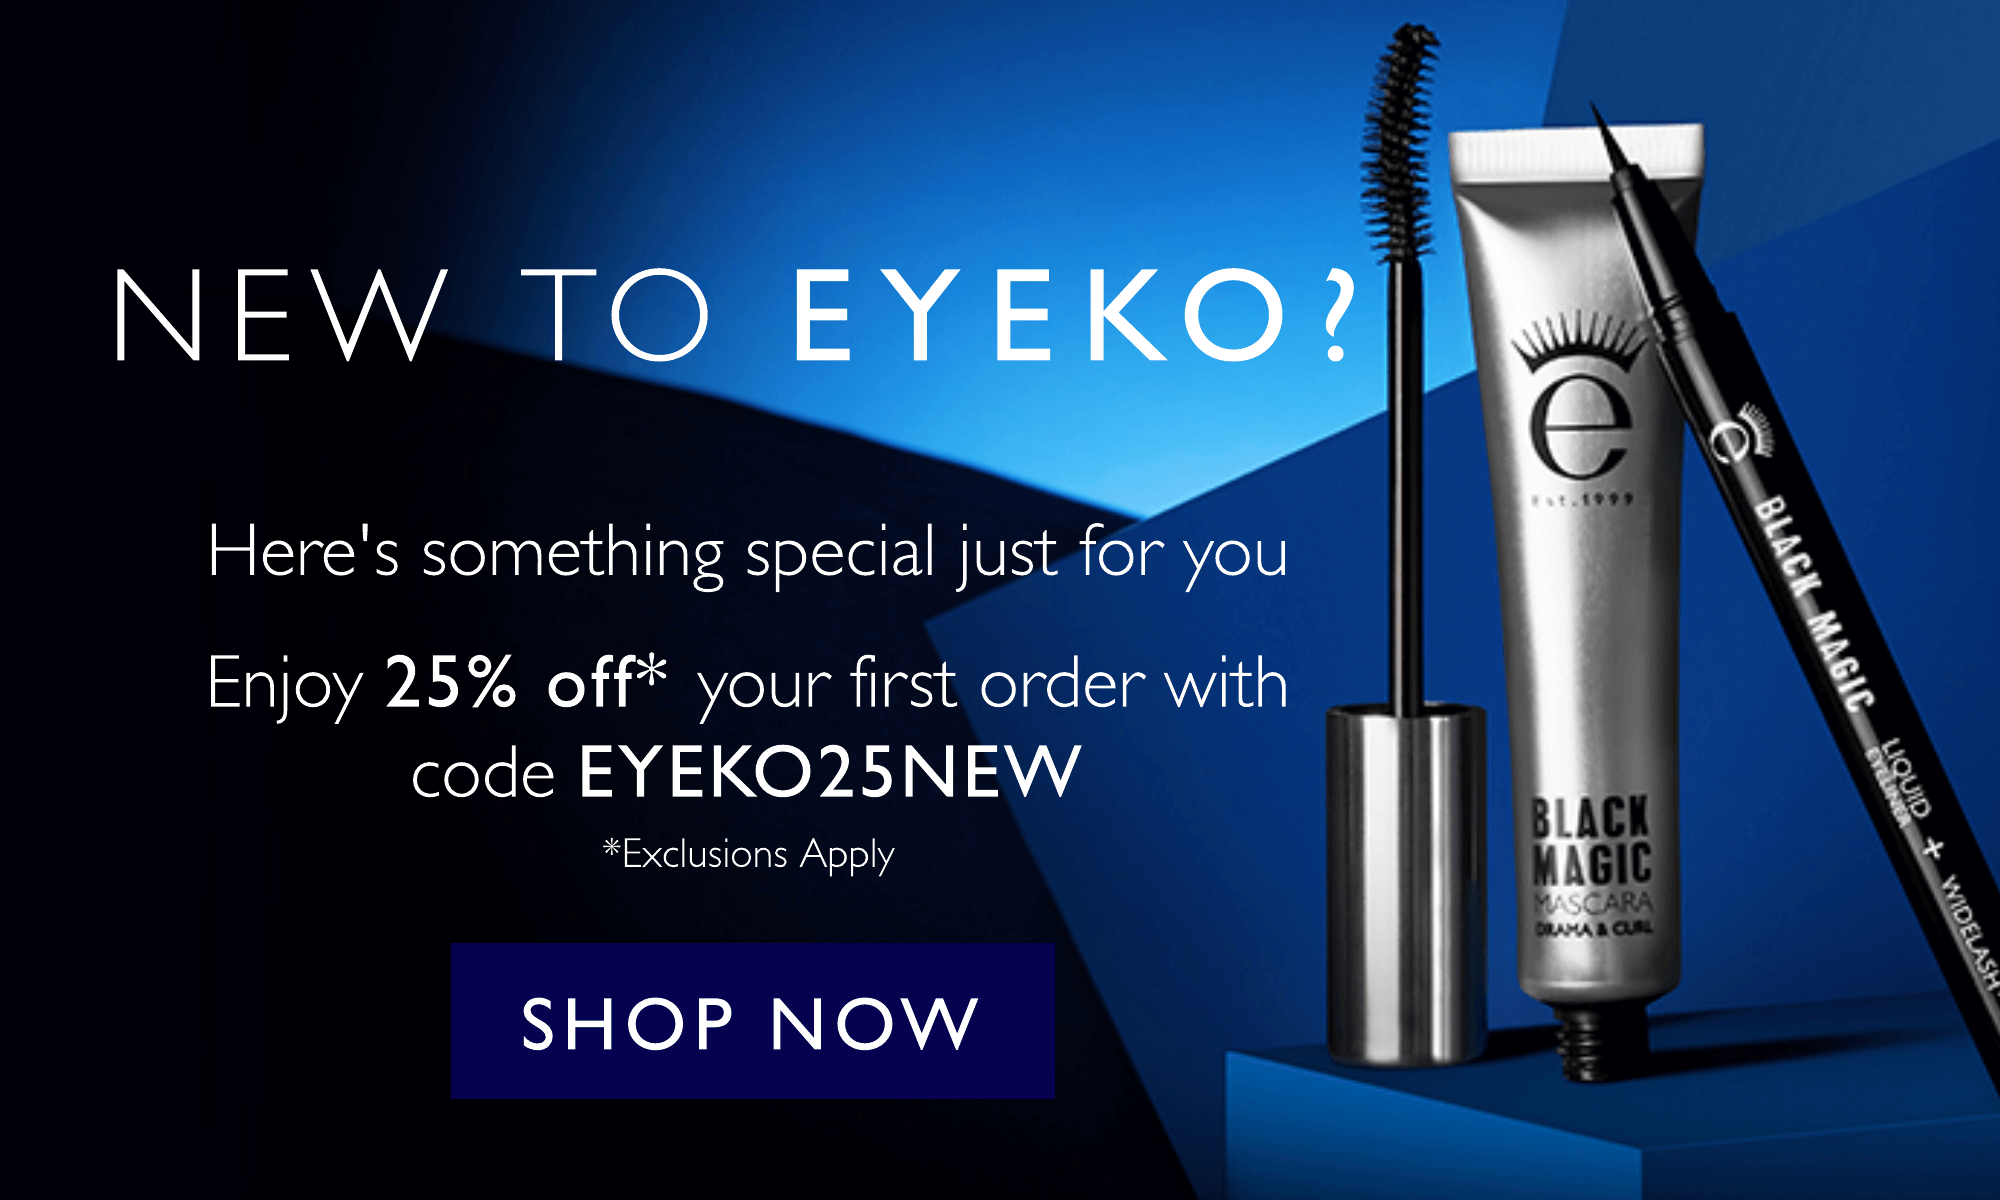 New to eyeko? Here's something special just for you - enjoy 25% off your first order with code EYEKO25NEW. Exclusions apply.